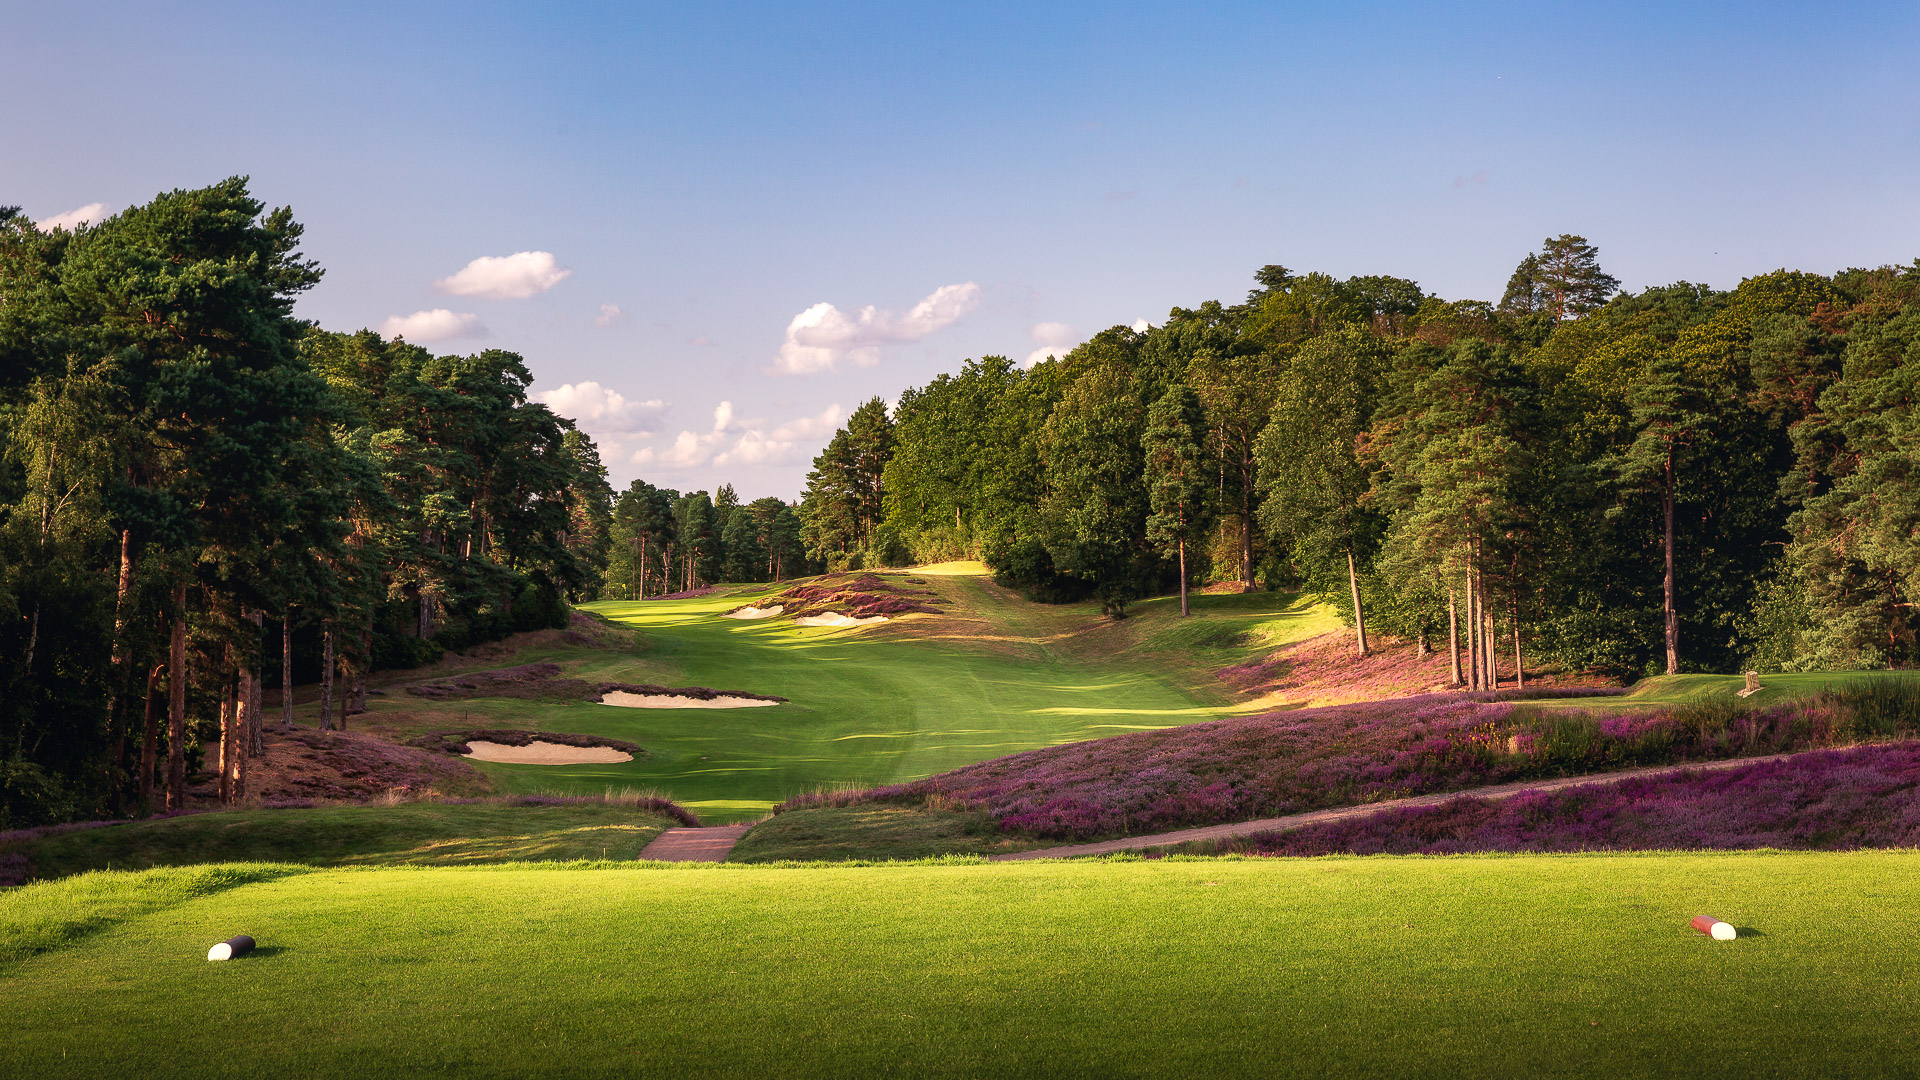 01st-Hole-St-Georges-Hill-Golf-Club-2281-Edit